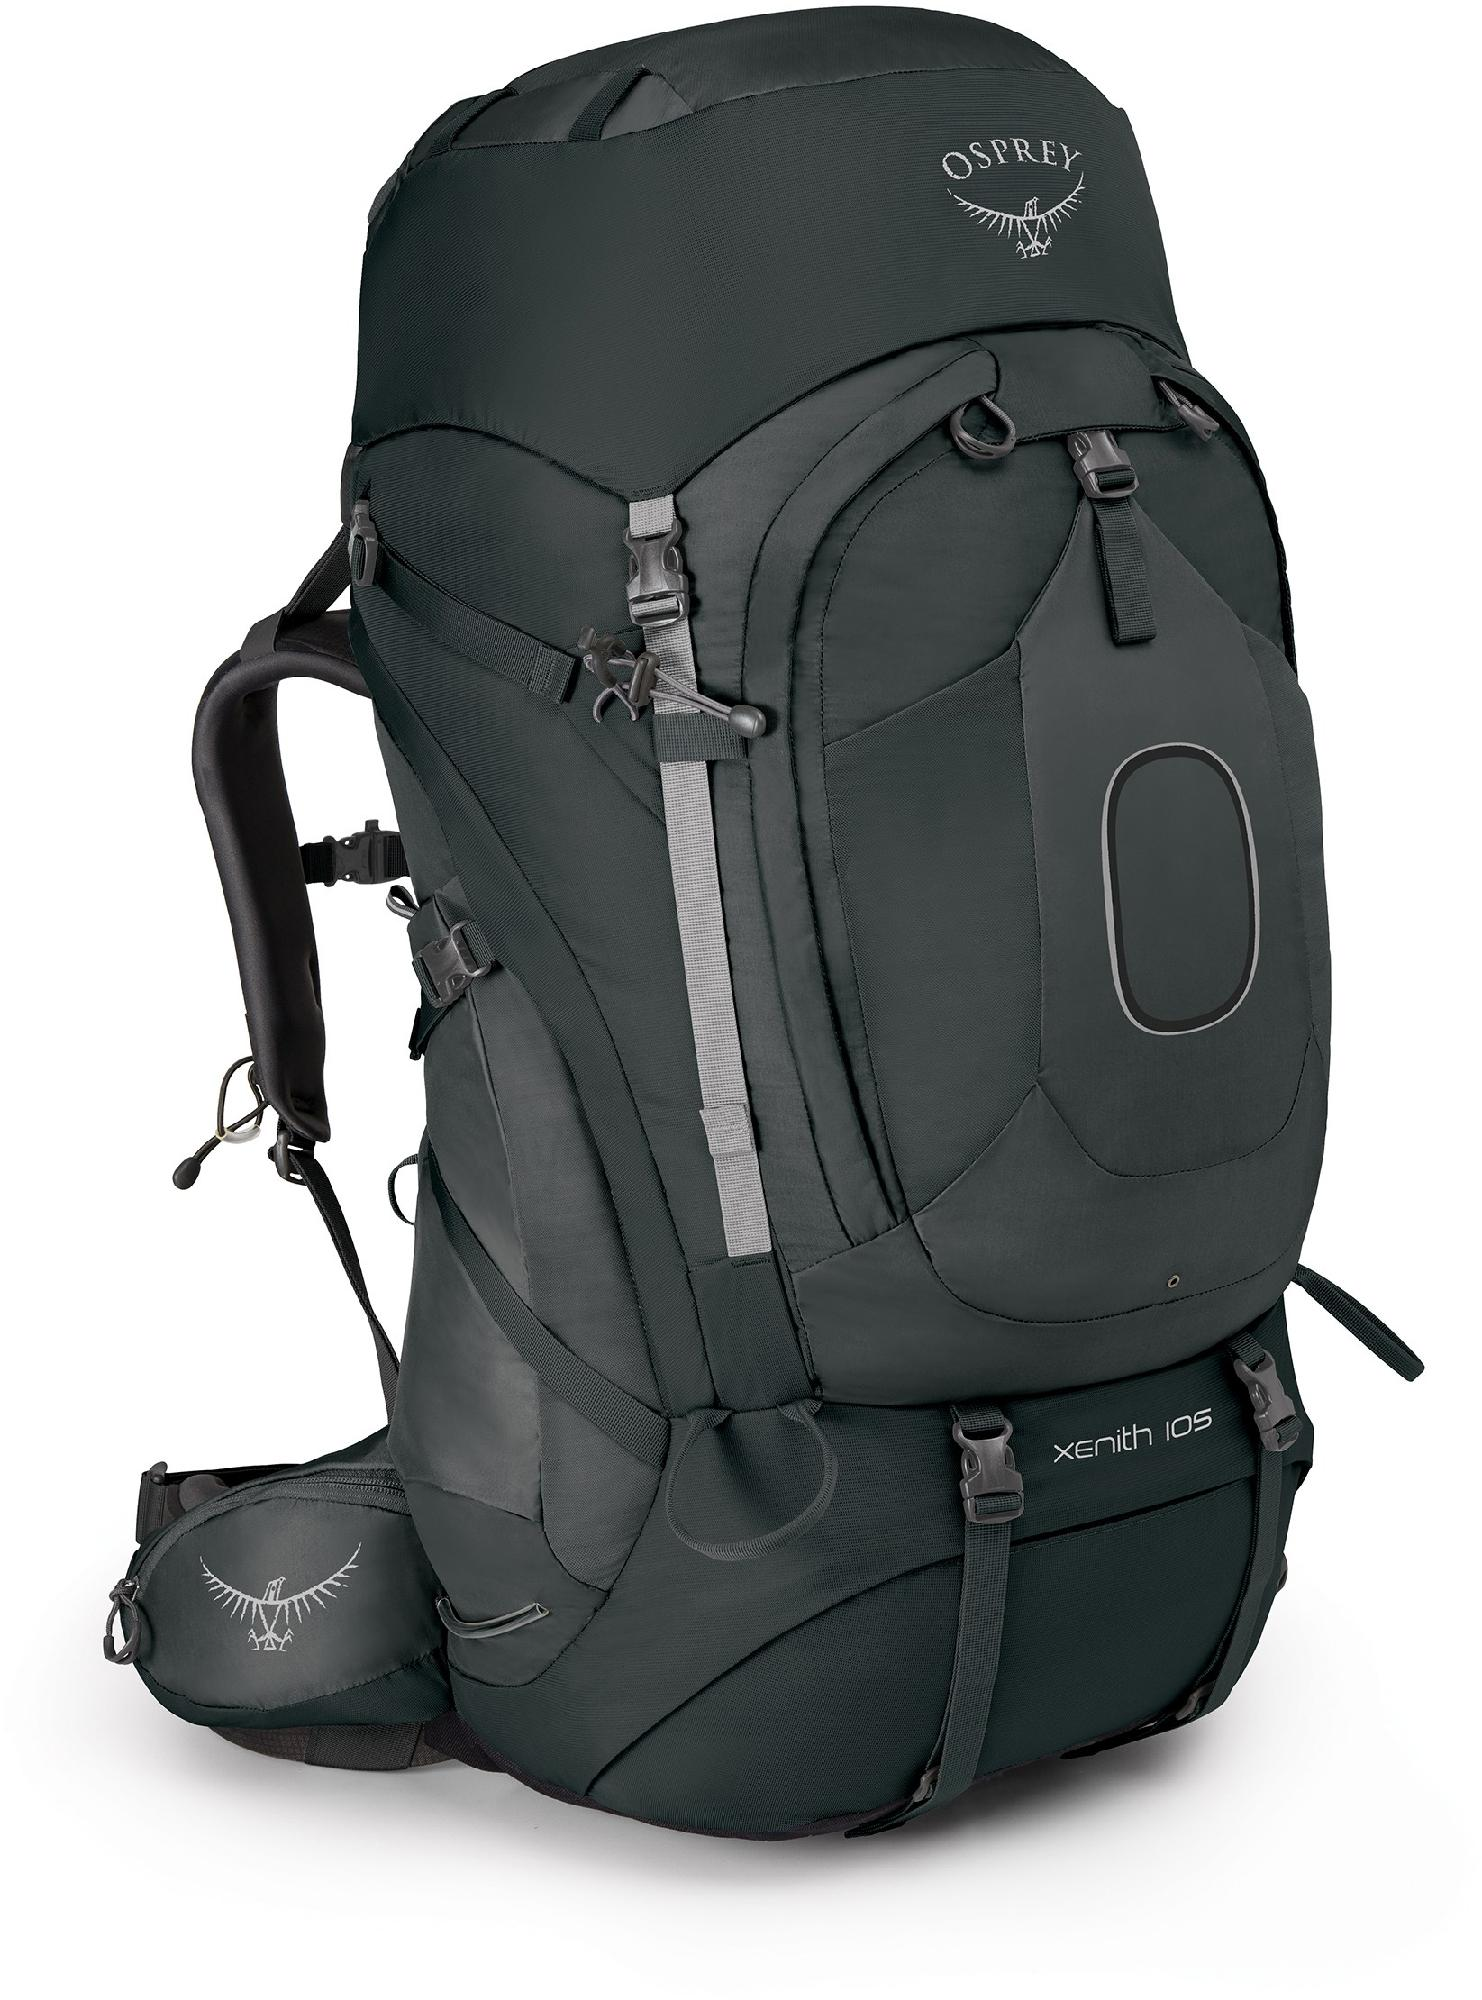 Osprey Xenith 105 Pack - Men's